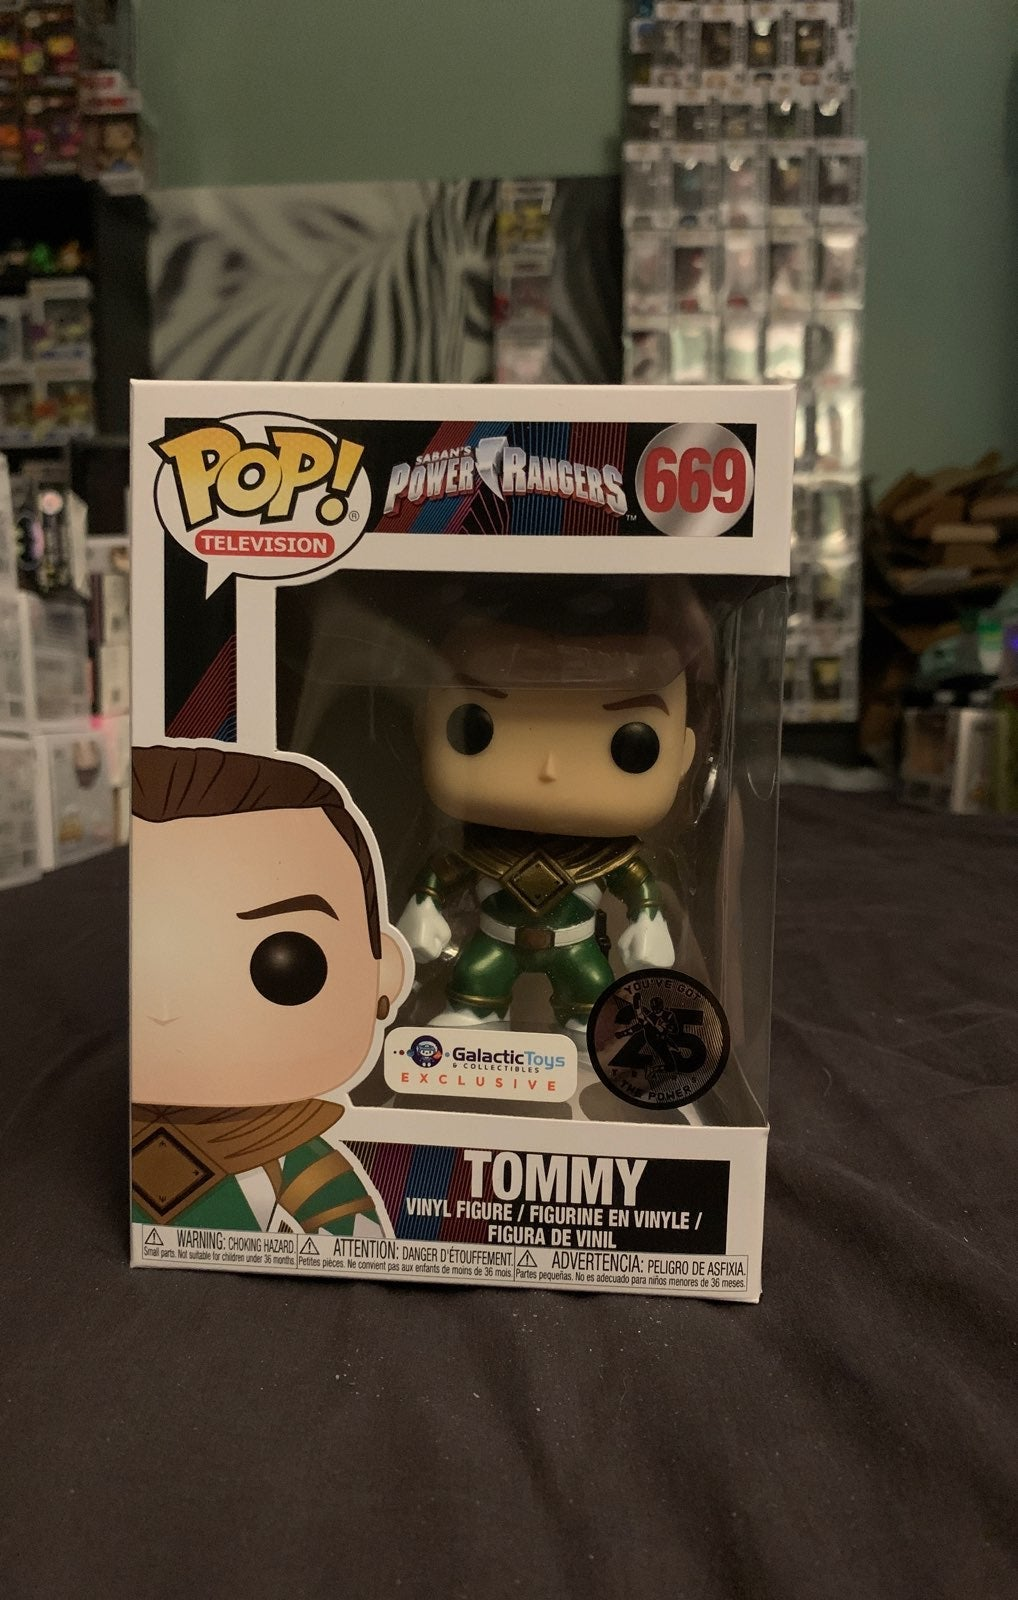 Metallic Tommy from Power Rangers